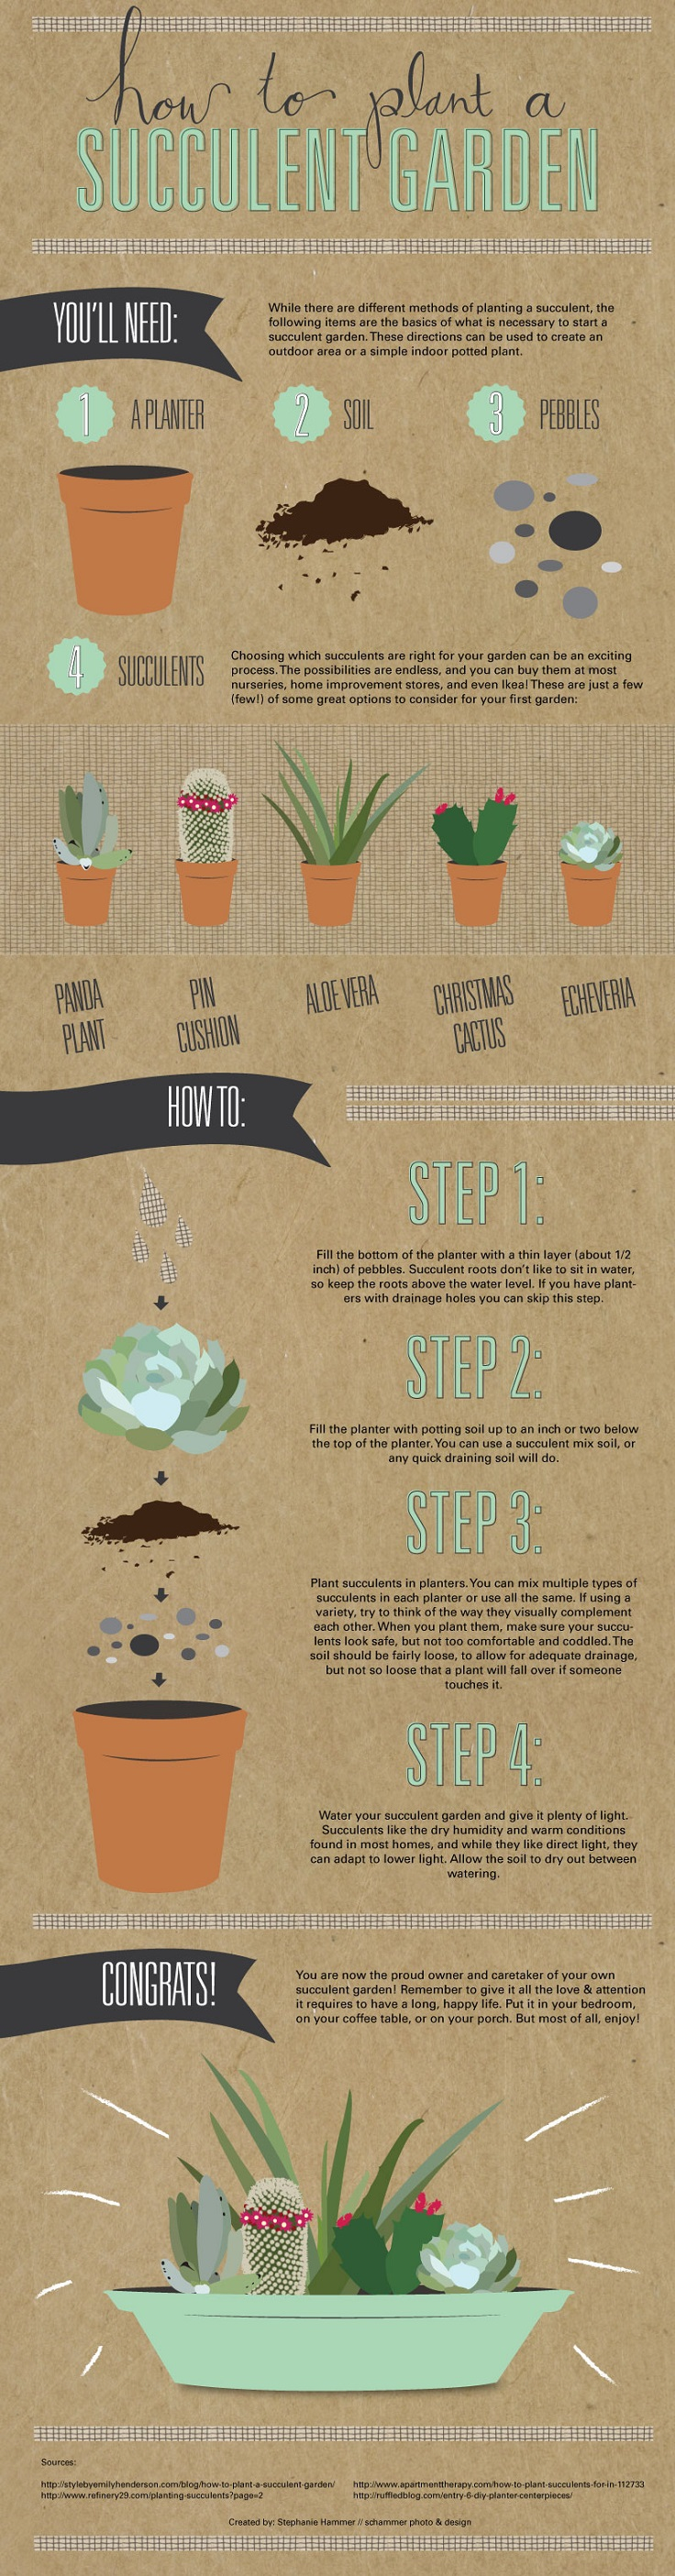 How-to-Plant-a-Succulent-Garden-Infographic